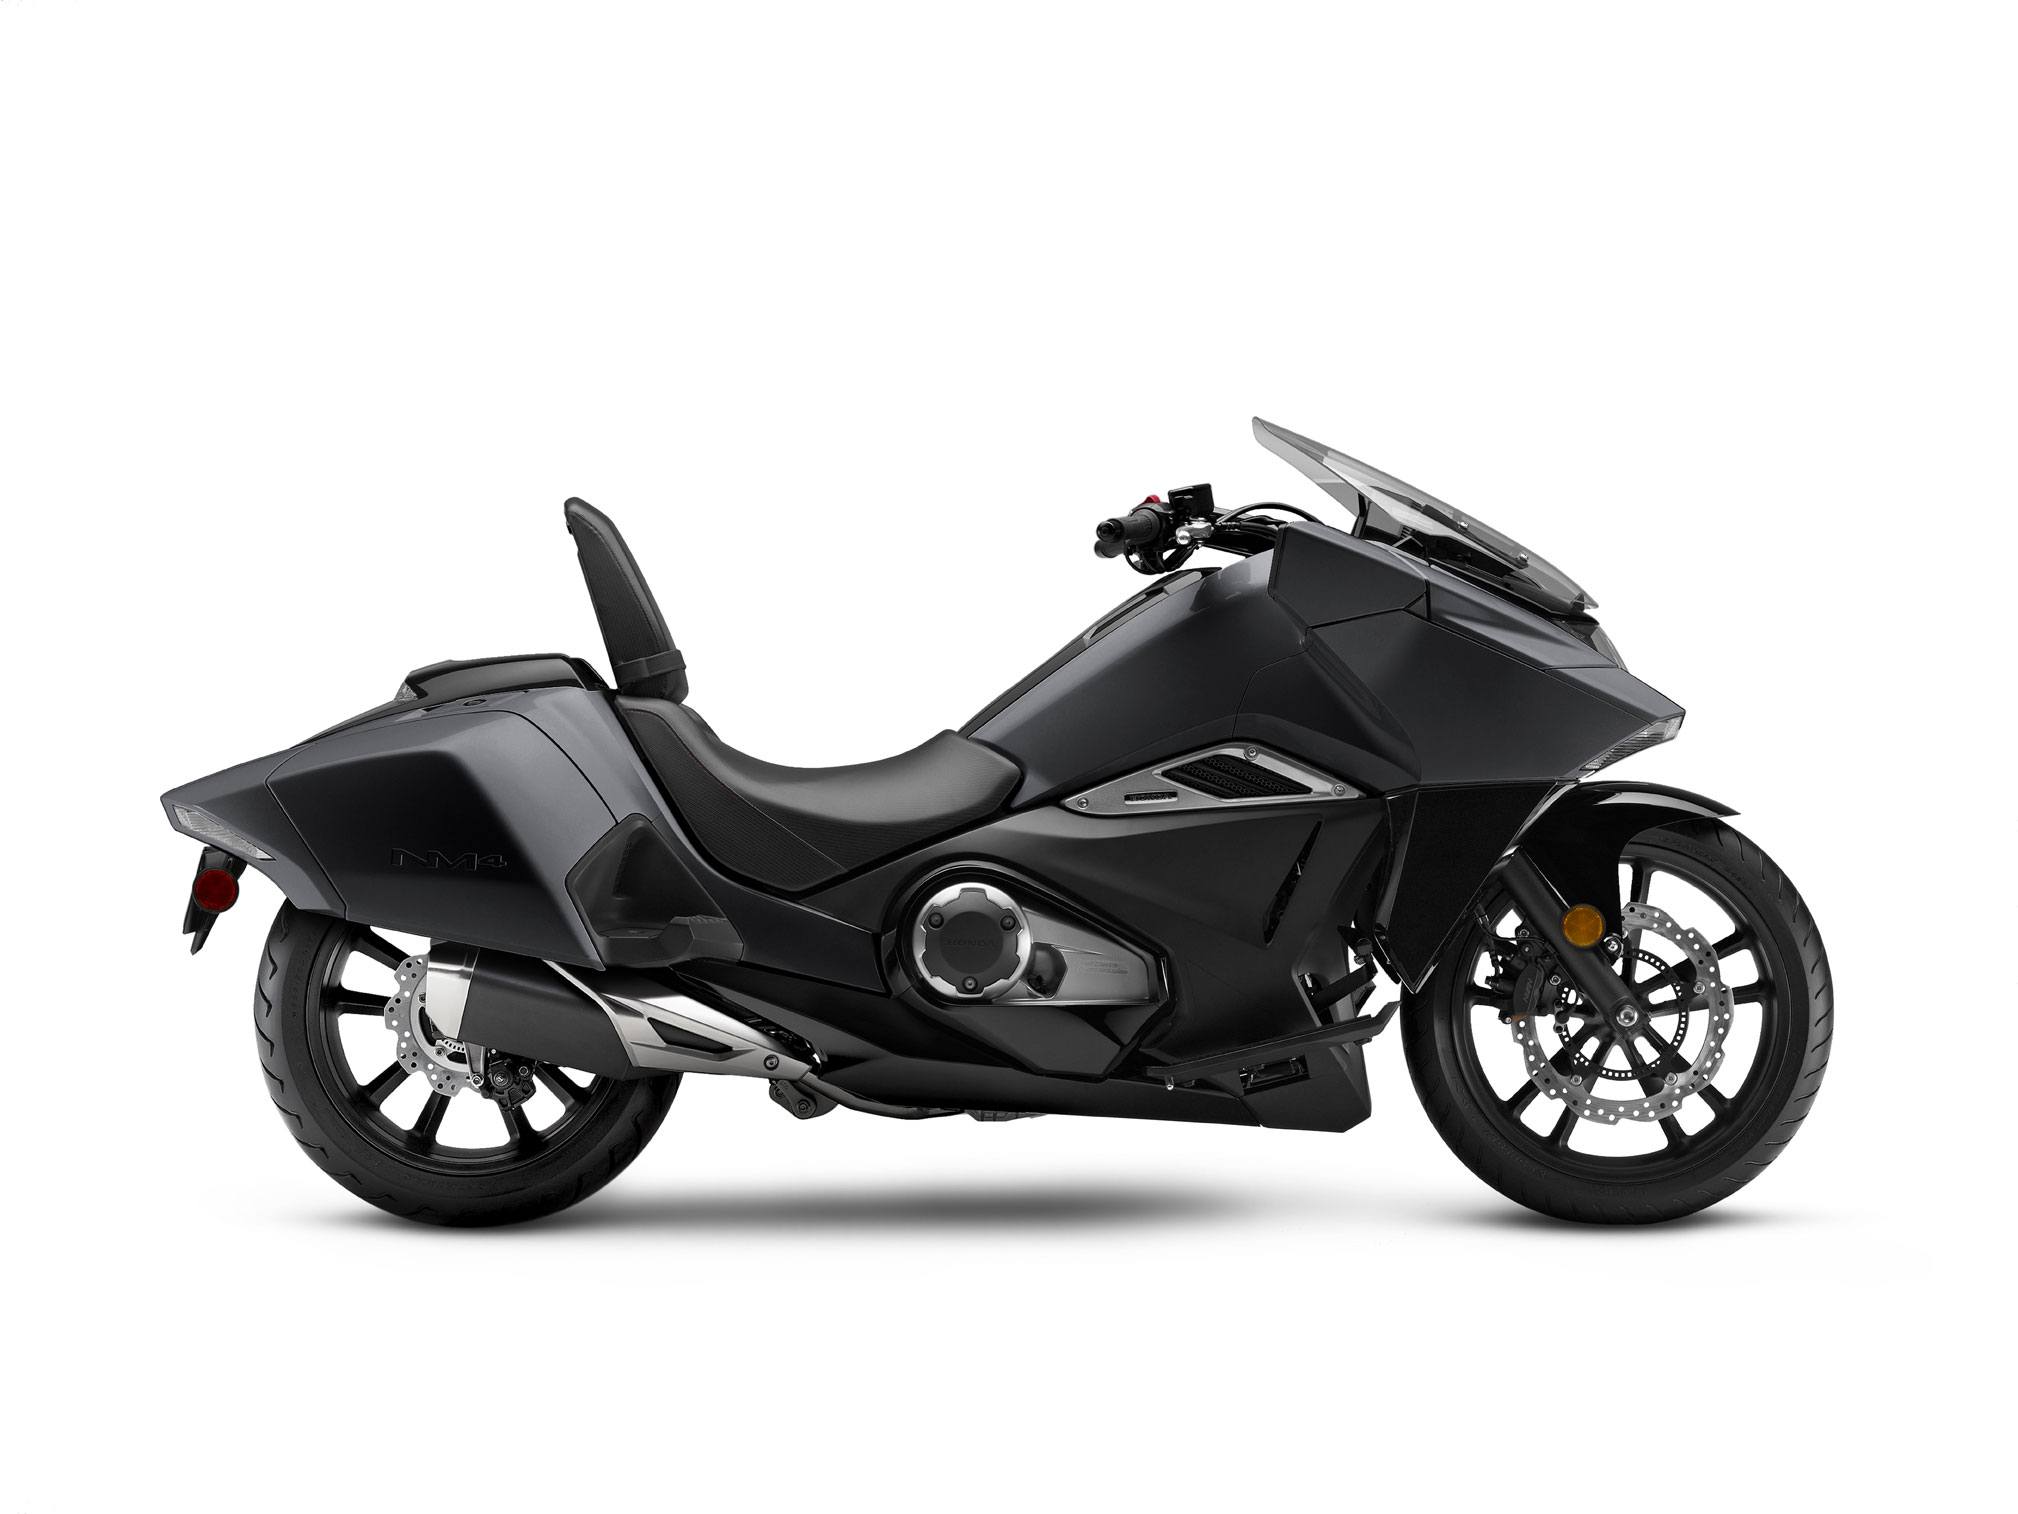 2018 honda nm4 review totalmotorcycle. Black Bedroom Furniture Sets. Home Design Ideas